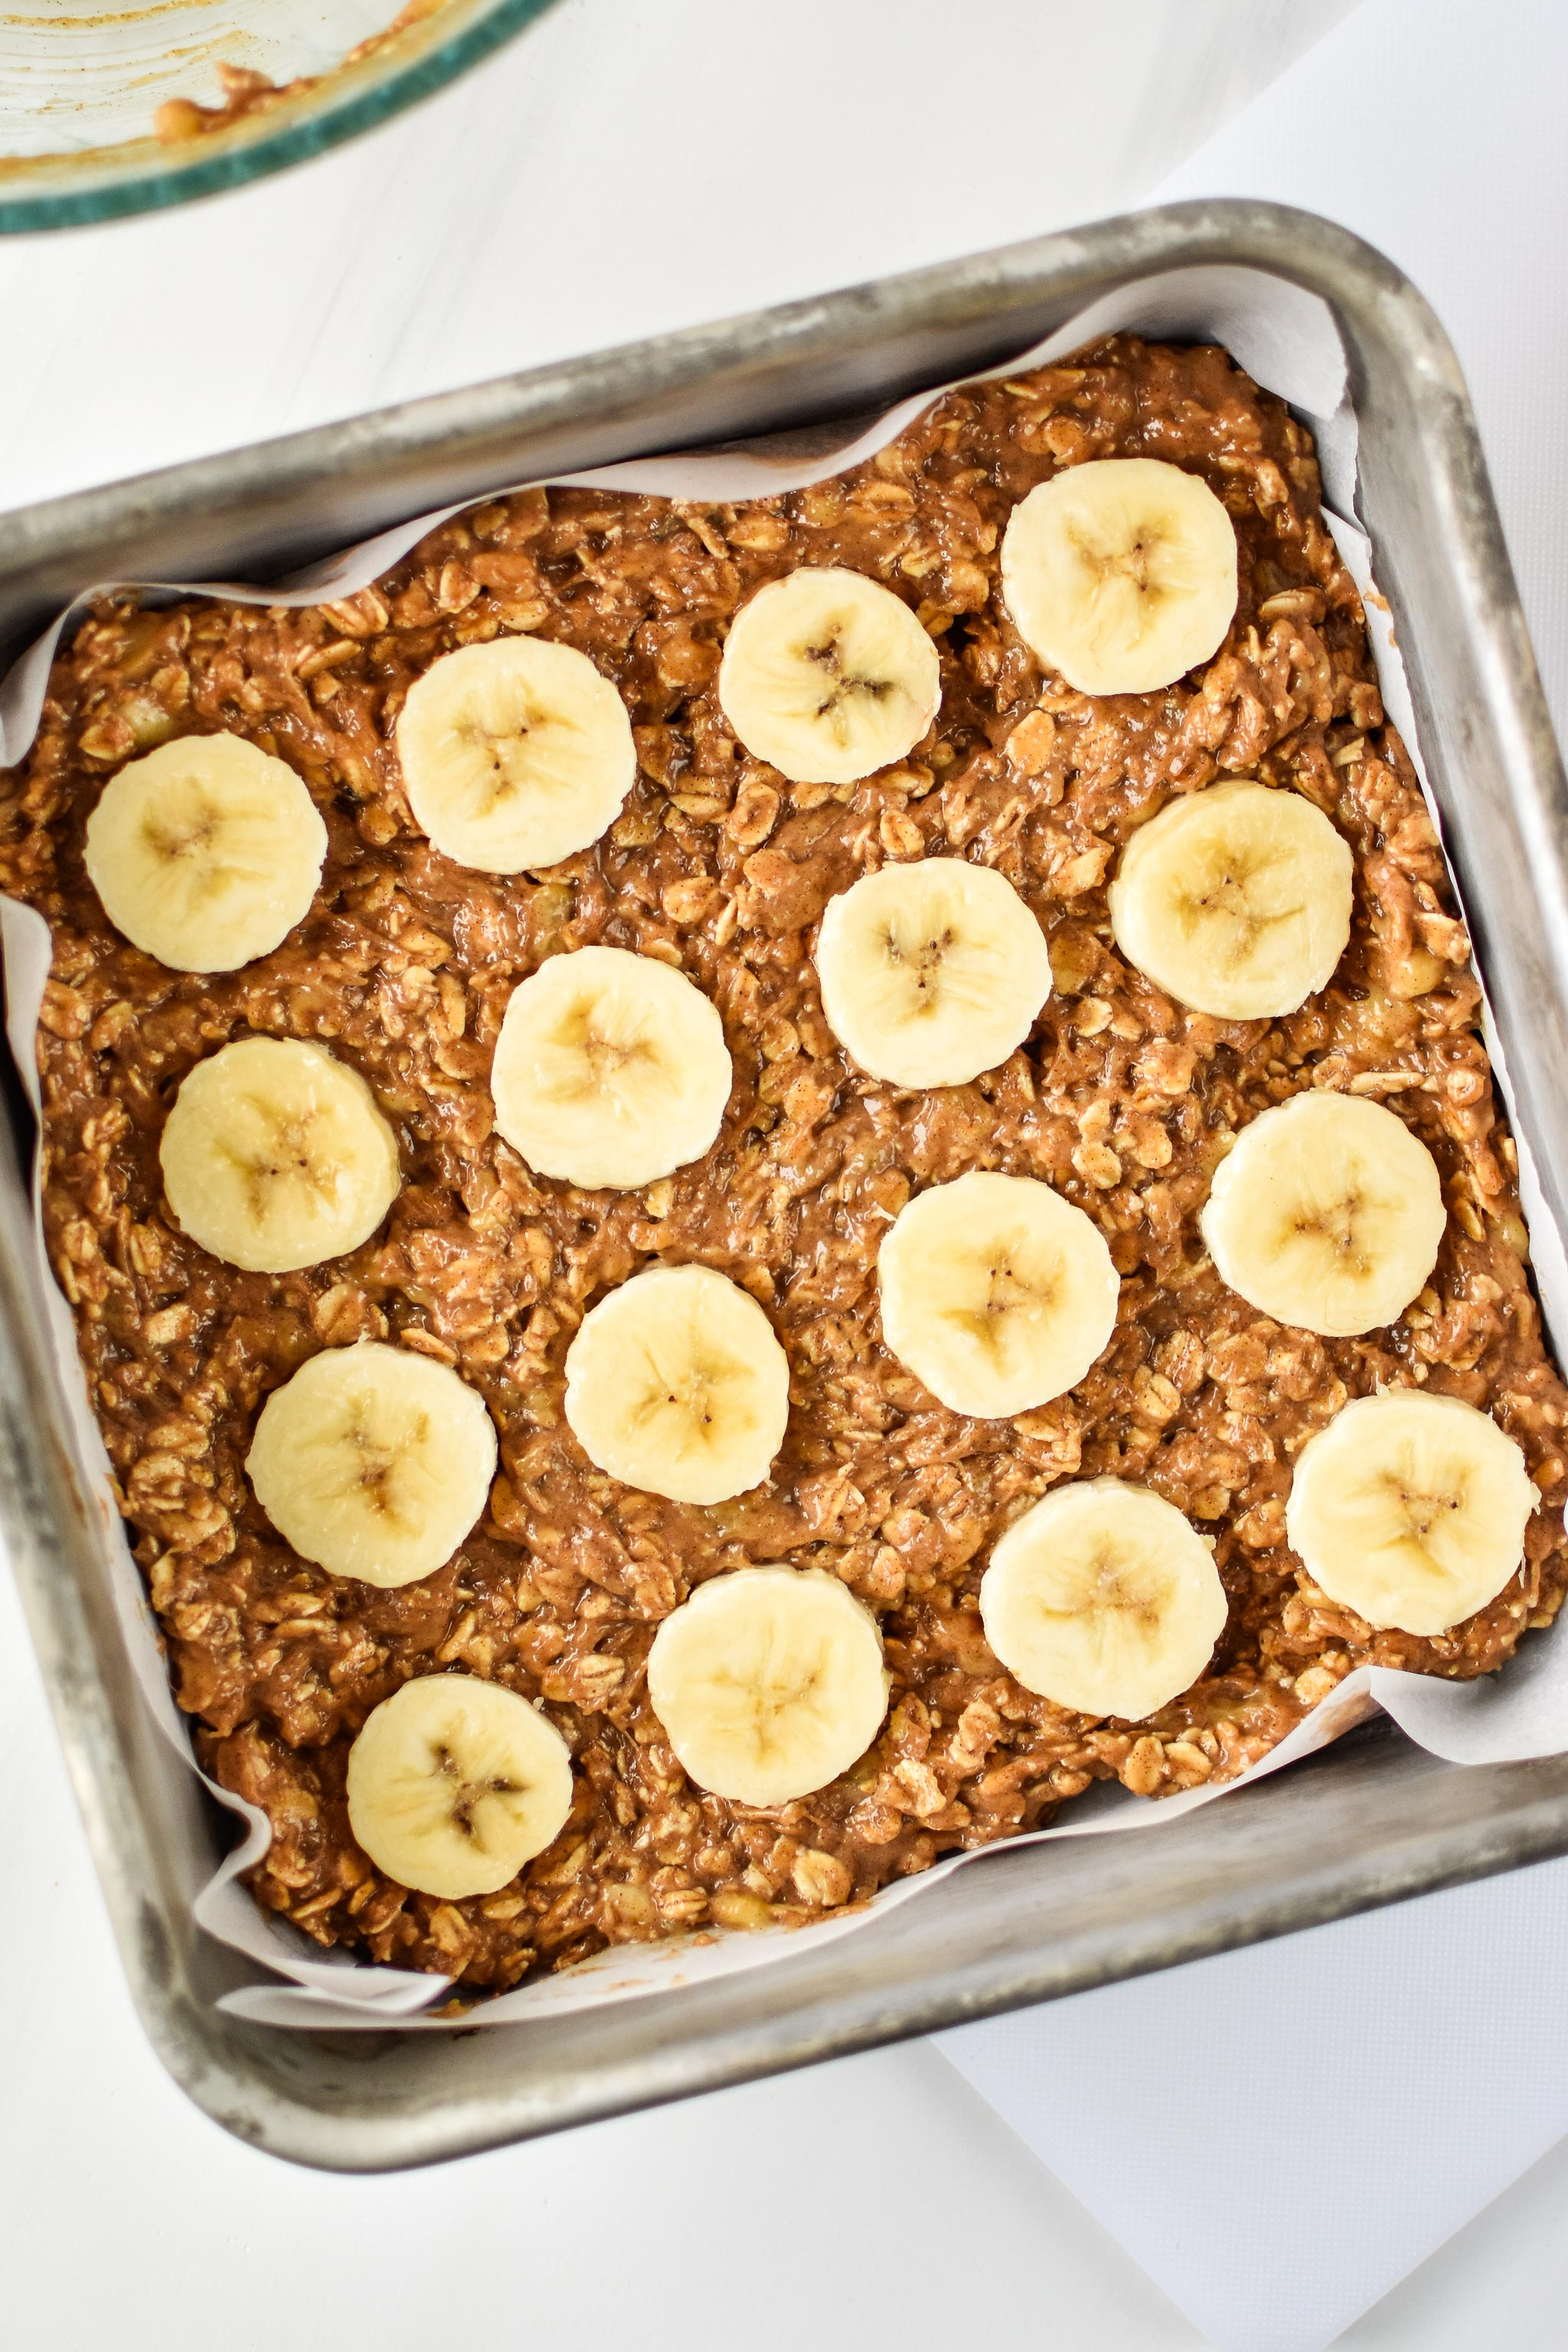 PB Banana Oatmeal Breakfast Bars ready for the oven.